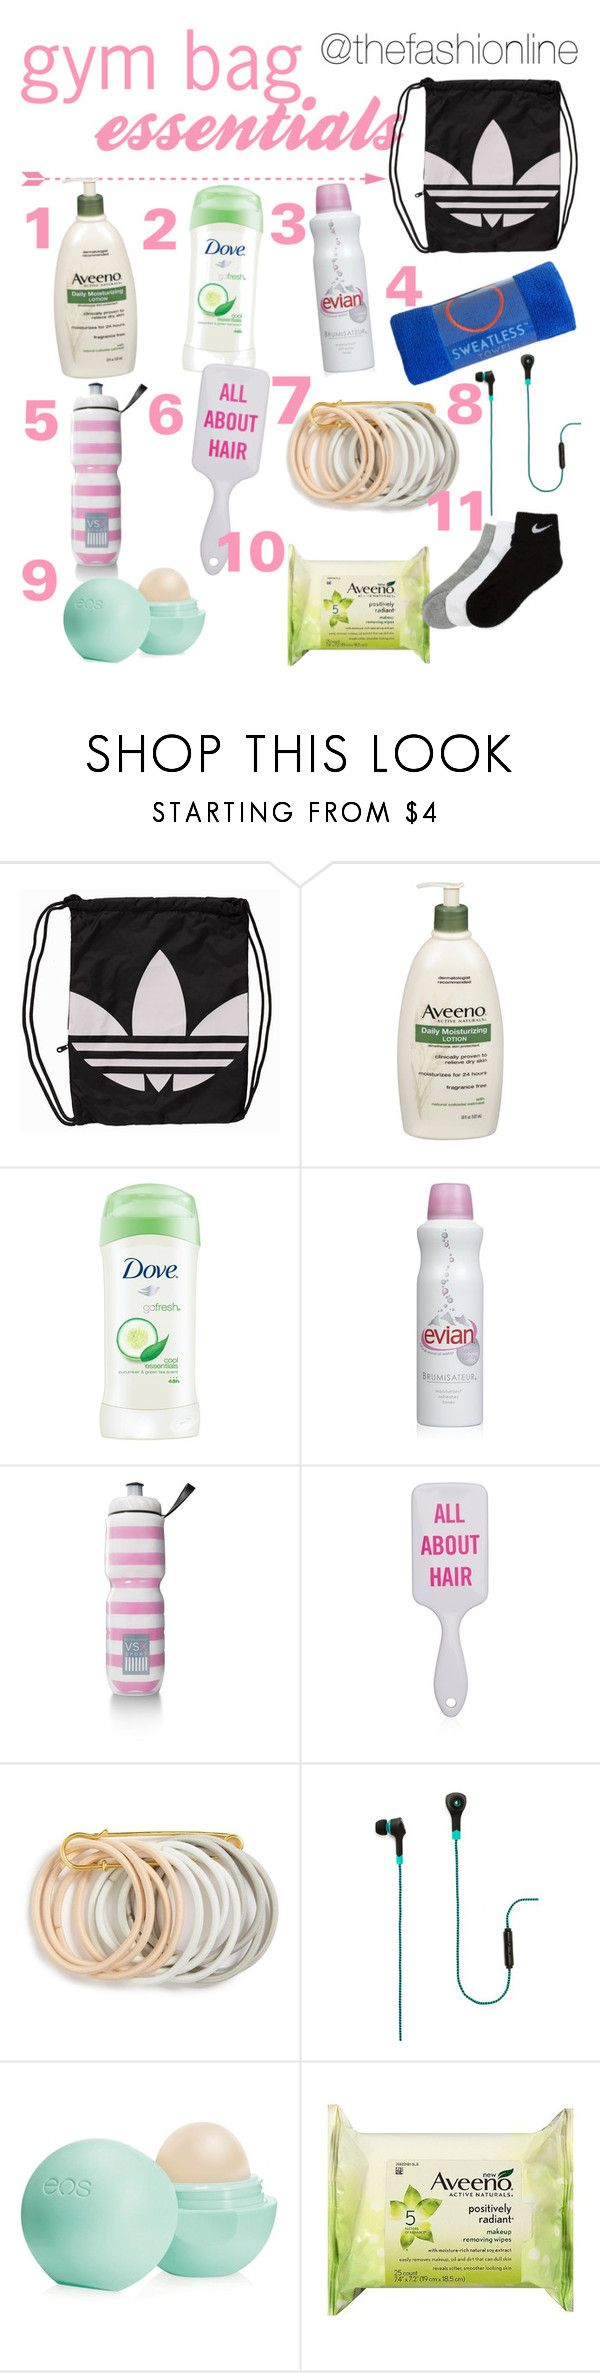 """""""What's In My Gym Bag"""" by thefashionline ❤ liked on Polyvore featuring adidas Originals, Aveeno, Dove, Victoria's Secret, Odeme, Merkury Innovations, Eos and NIKE"""